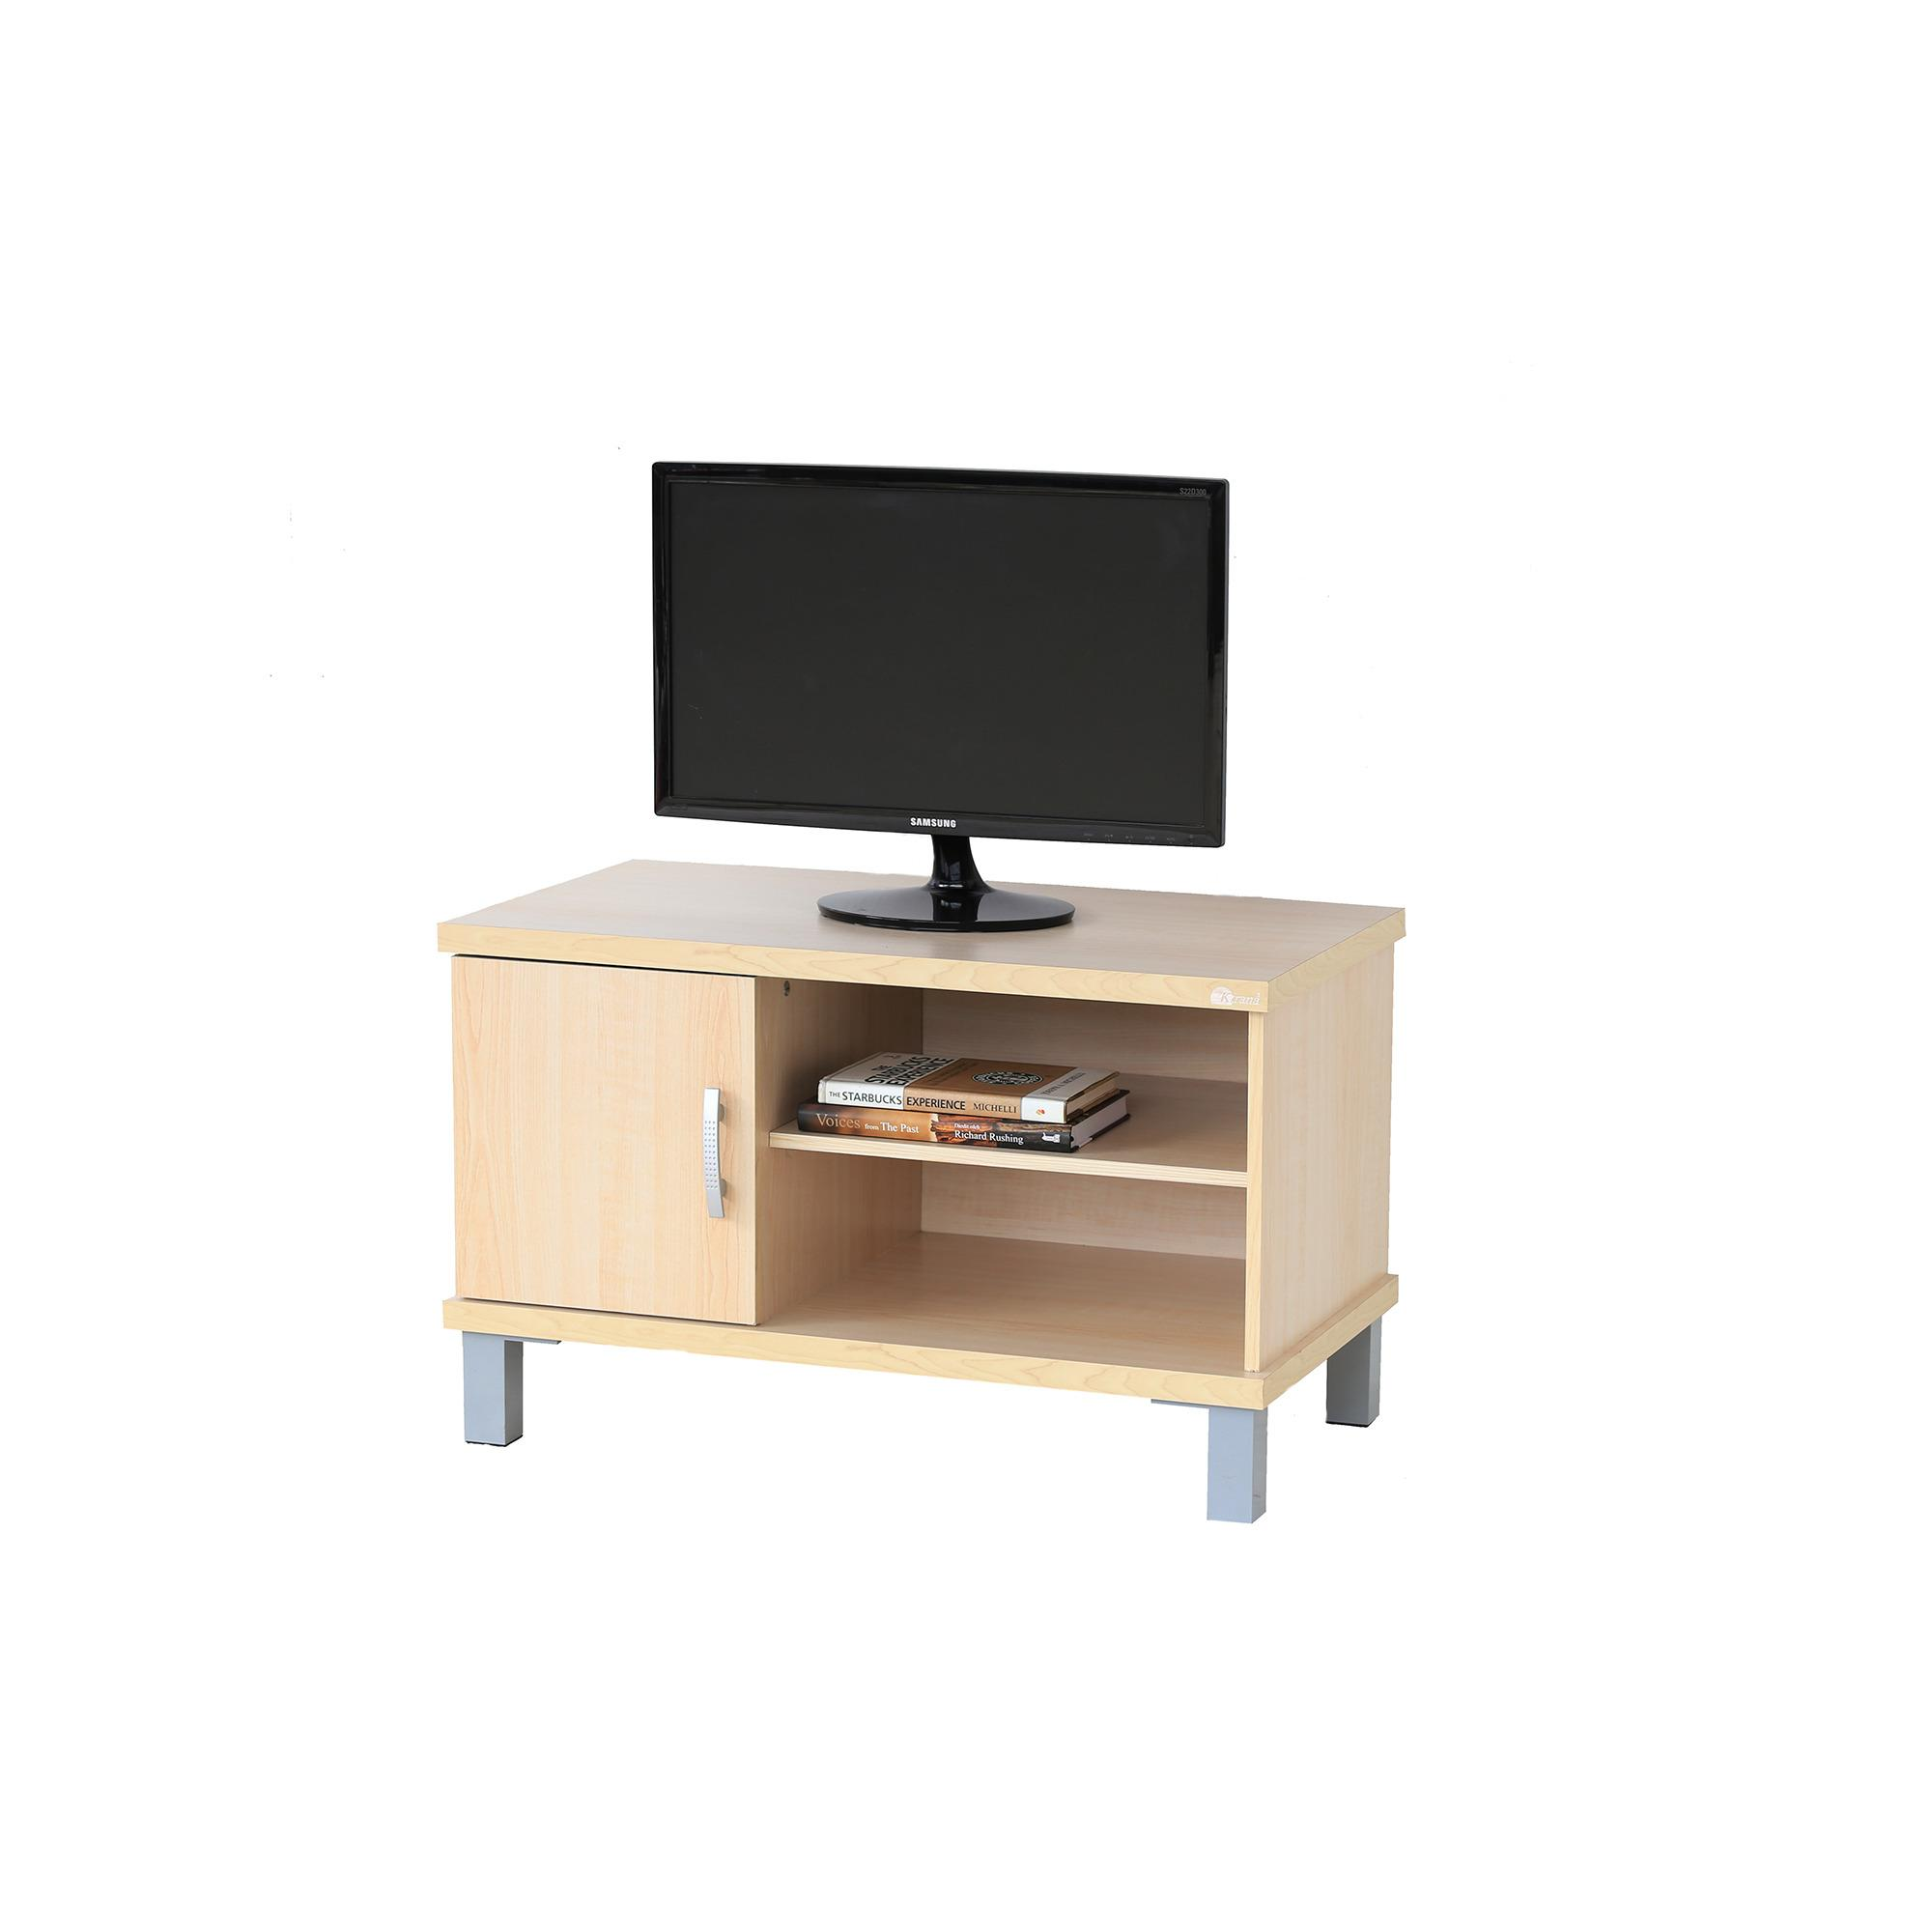 Kirana Rak TV Audio BF 883 WO - Beige